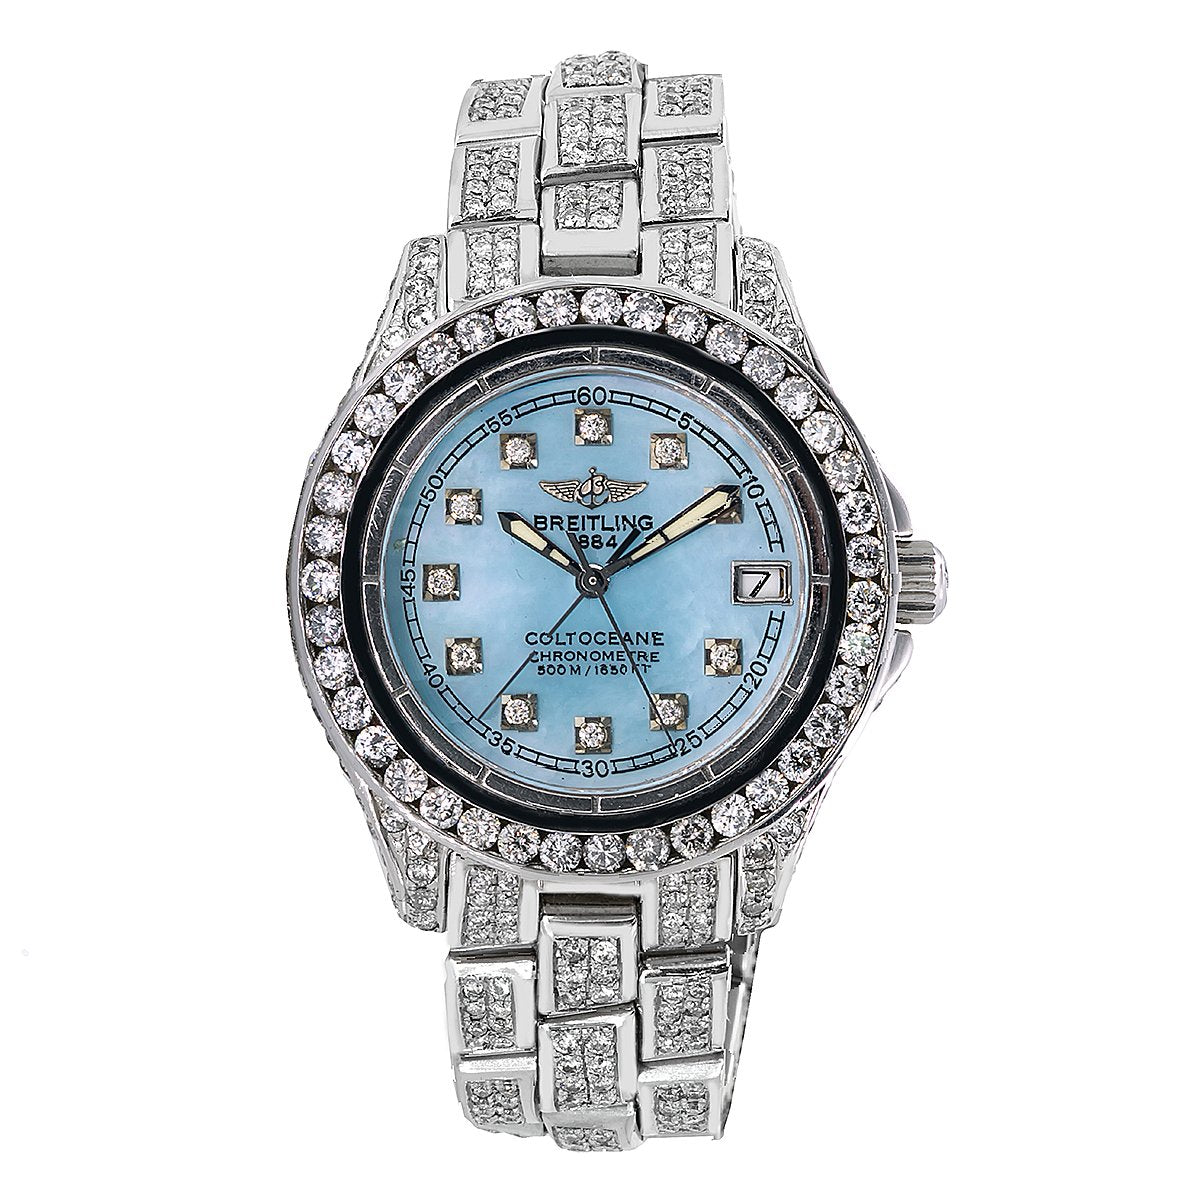 Breitling Colt Oceane A57350 33mm Blue Mother of Pearl with 8.0CT Diamonds Watch